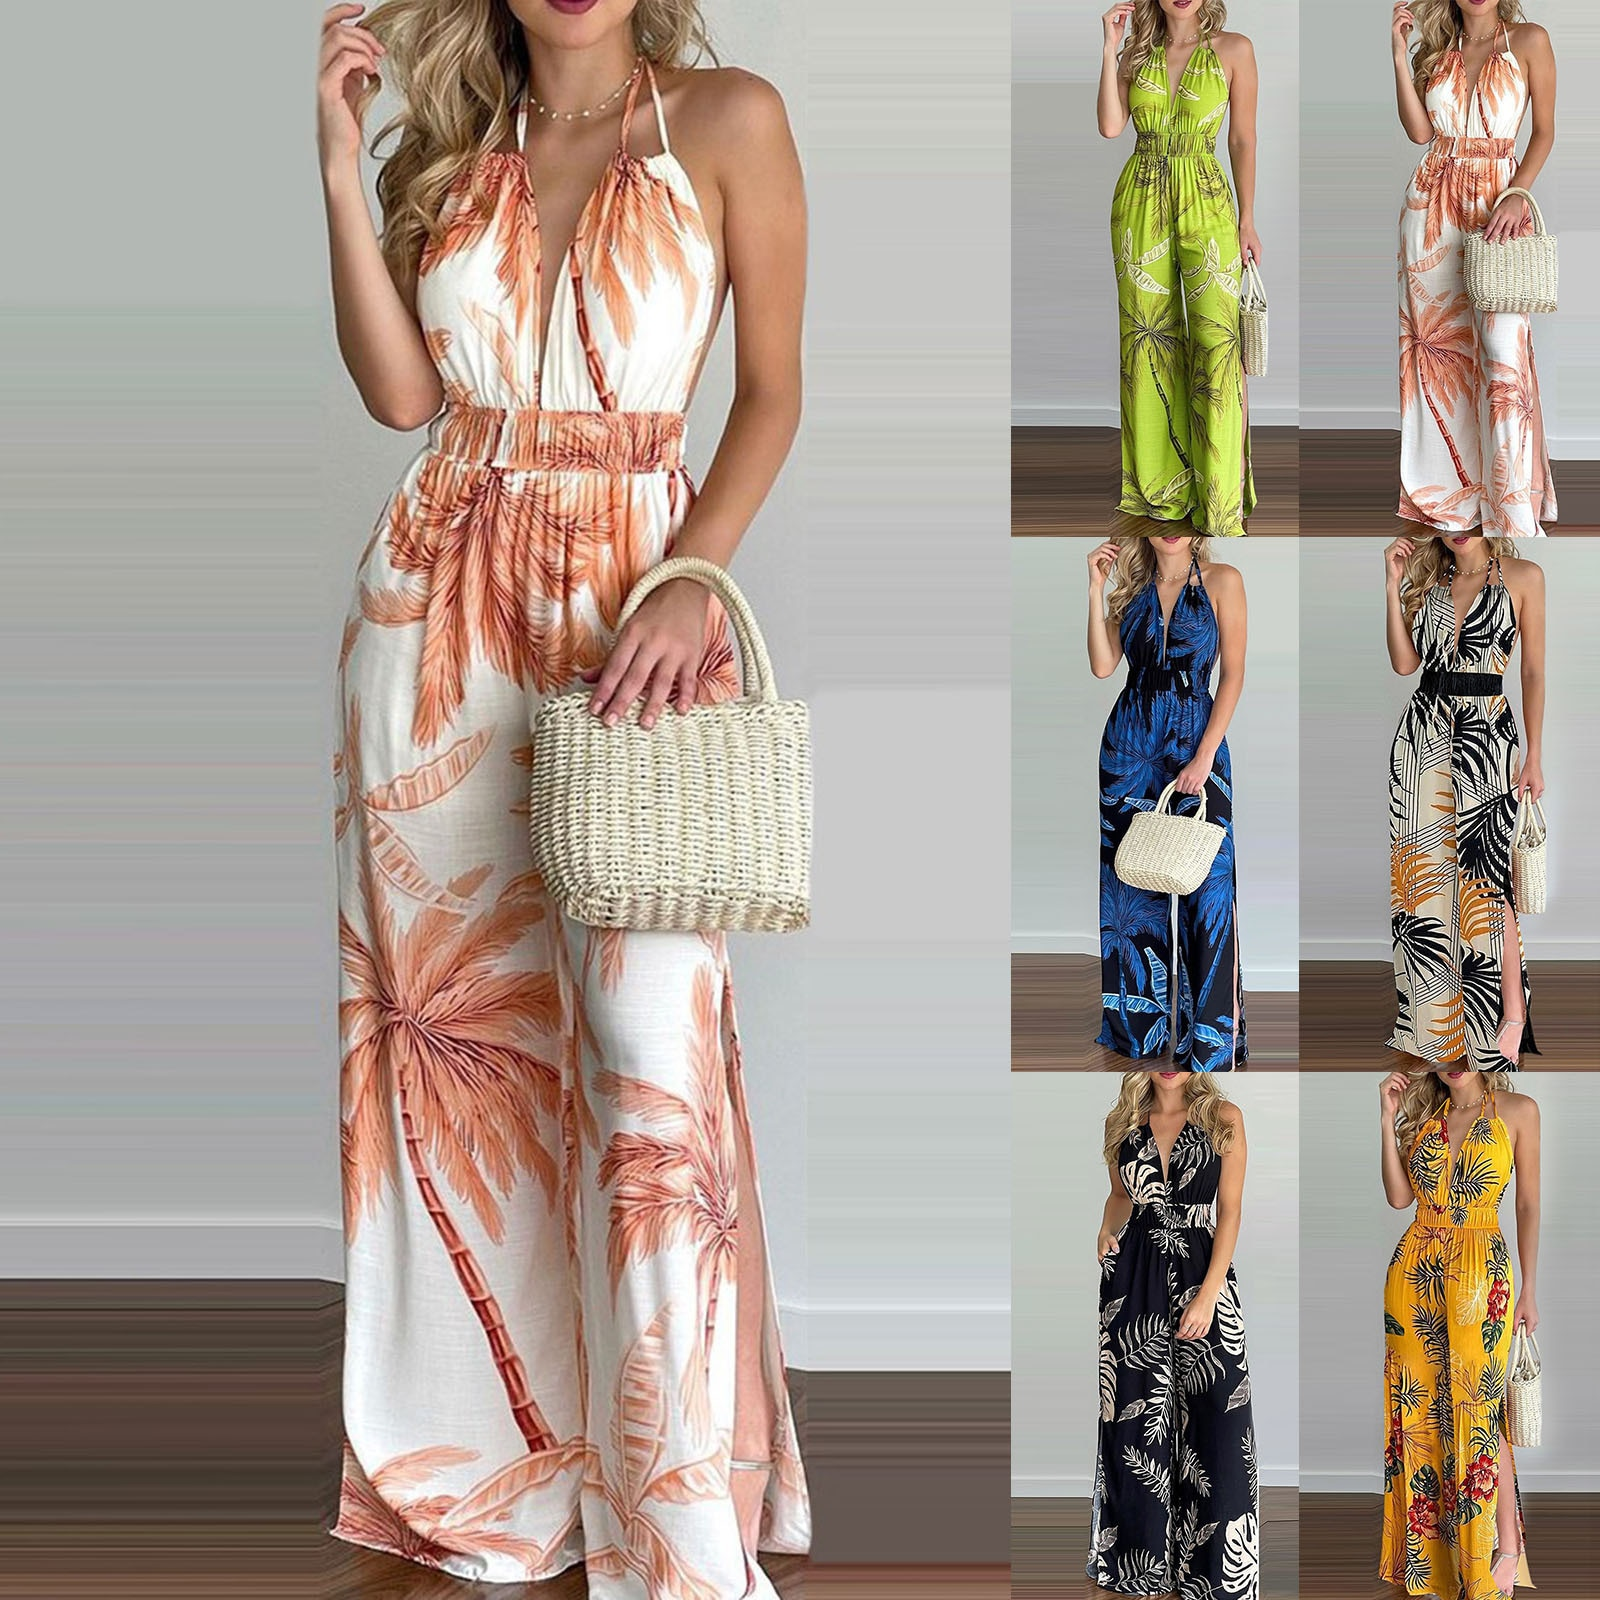 Women Fashion Jumpsuit Colorful Print Halter Backless One Piece Bohemian Jumpsuits Sexy Party Club Outfits 2021